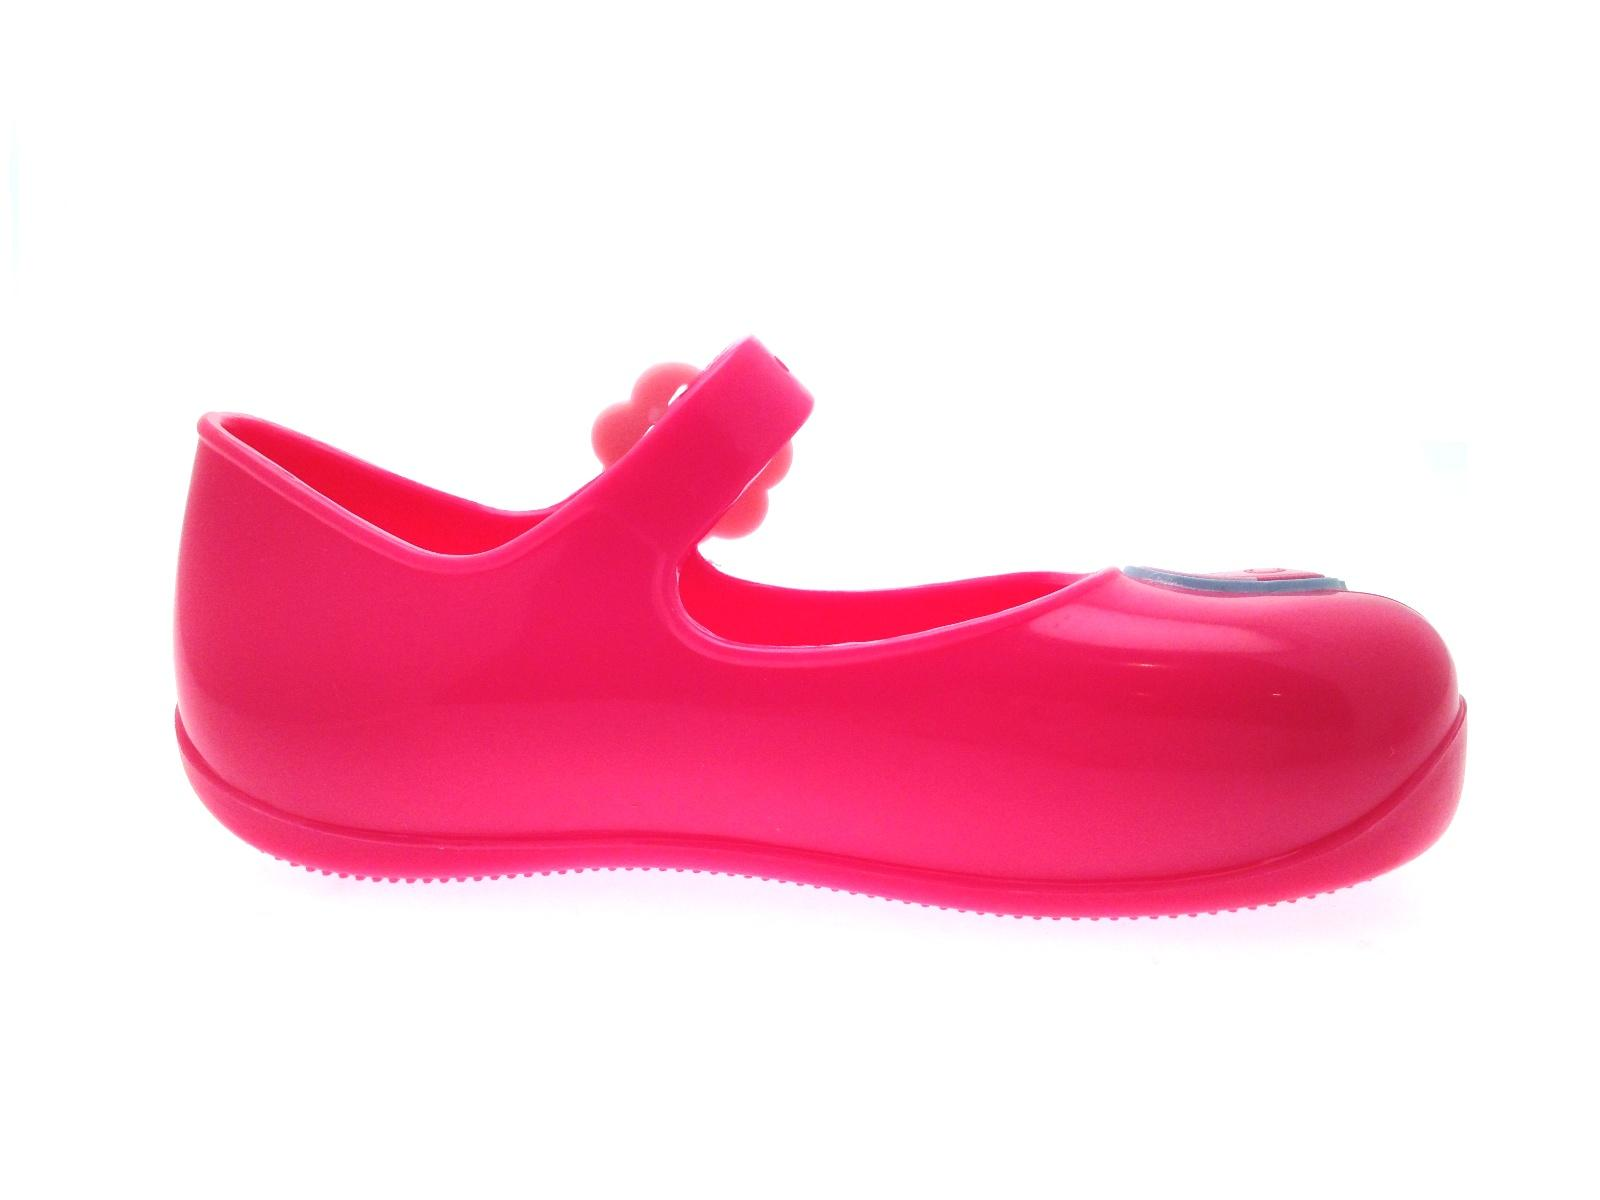 Chicas ROSA Peppa Pig Jelly Zapatos Bombas Playa jaleas Kids Sandalias Talla Uk 3 - 9